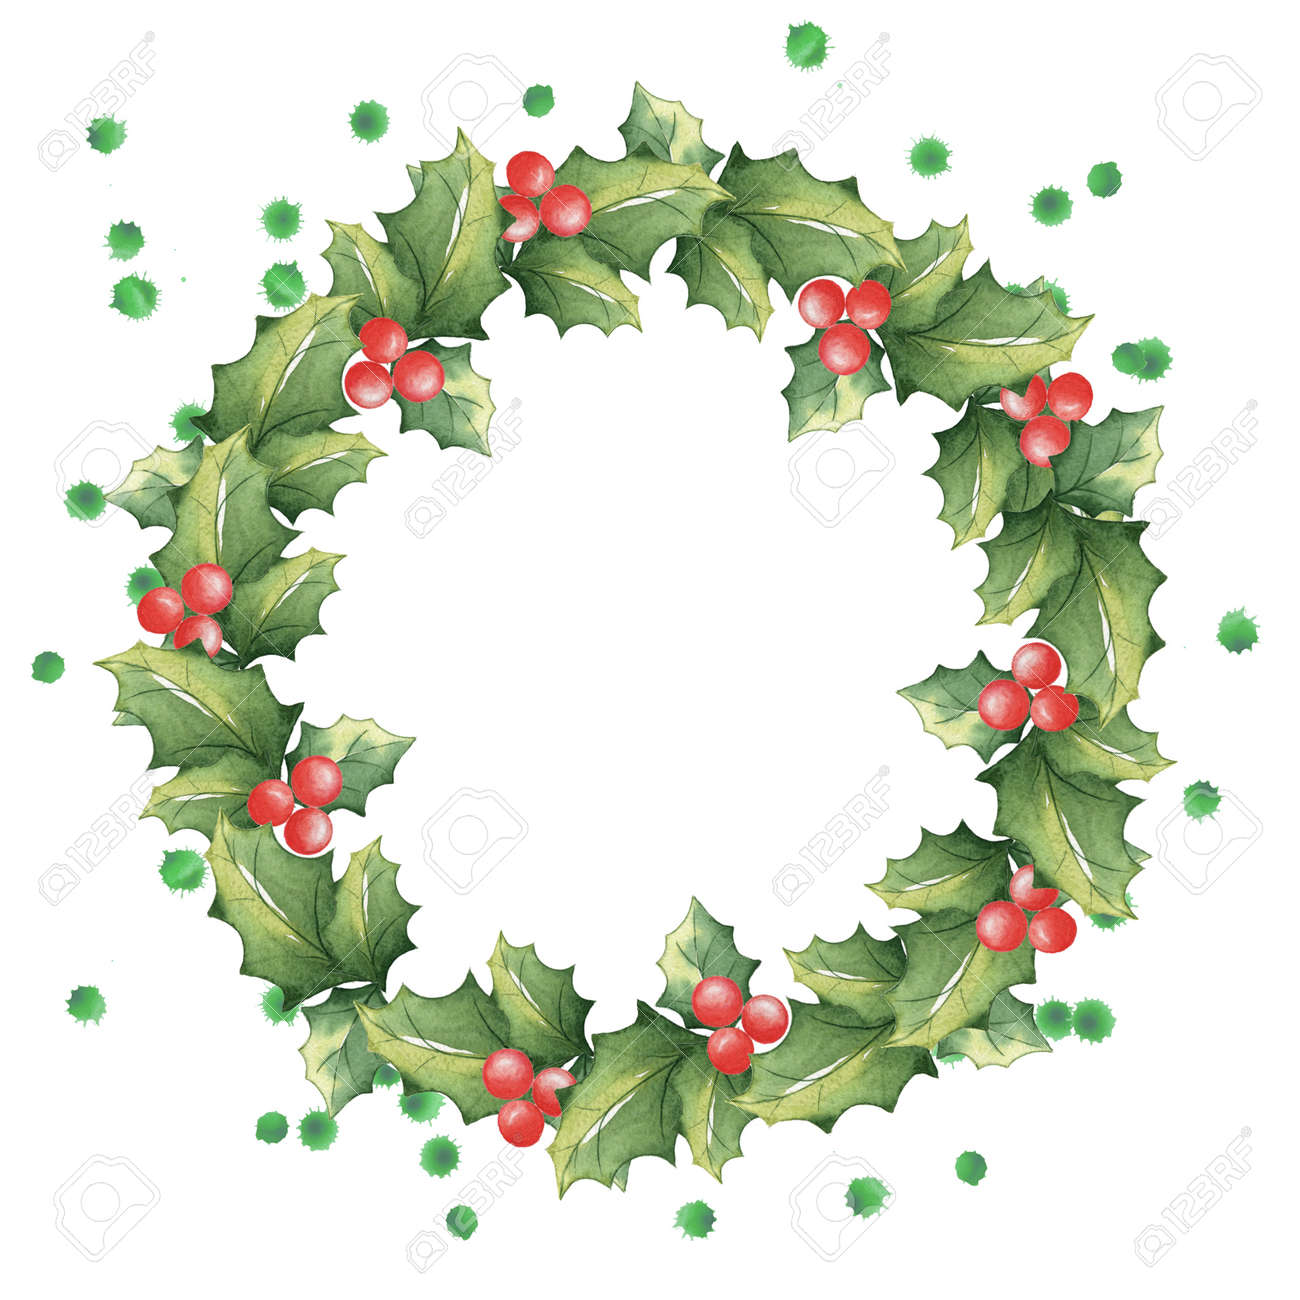 Christmas Wreath Drawing.Christmas Wreath Of Mistletoe With Watercolor Splashes Festive